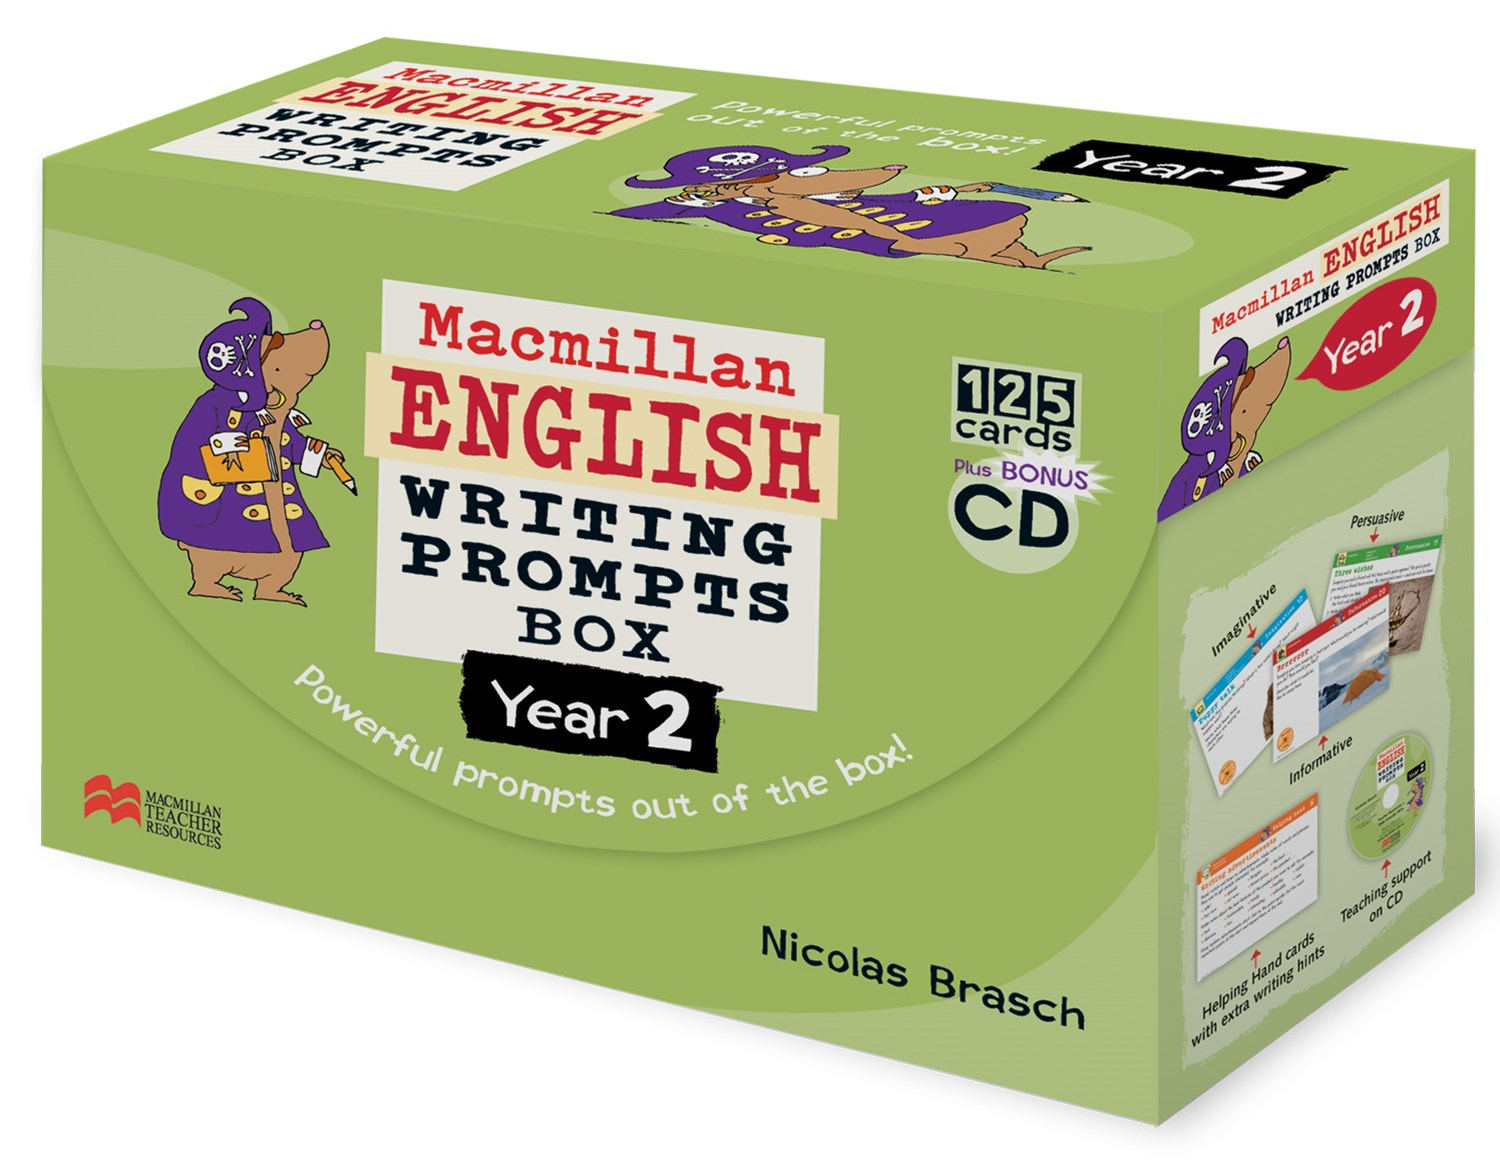 English Writing Prompts Box Y2